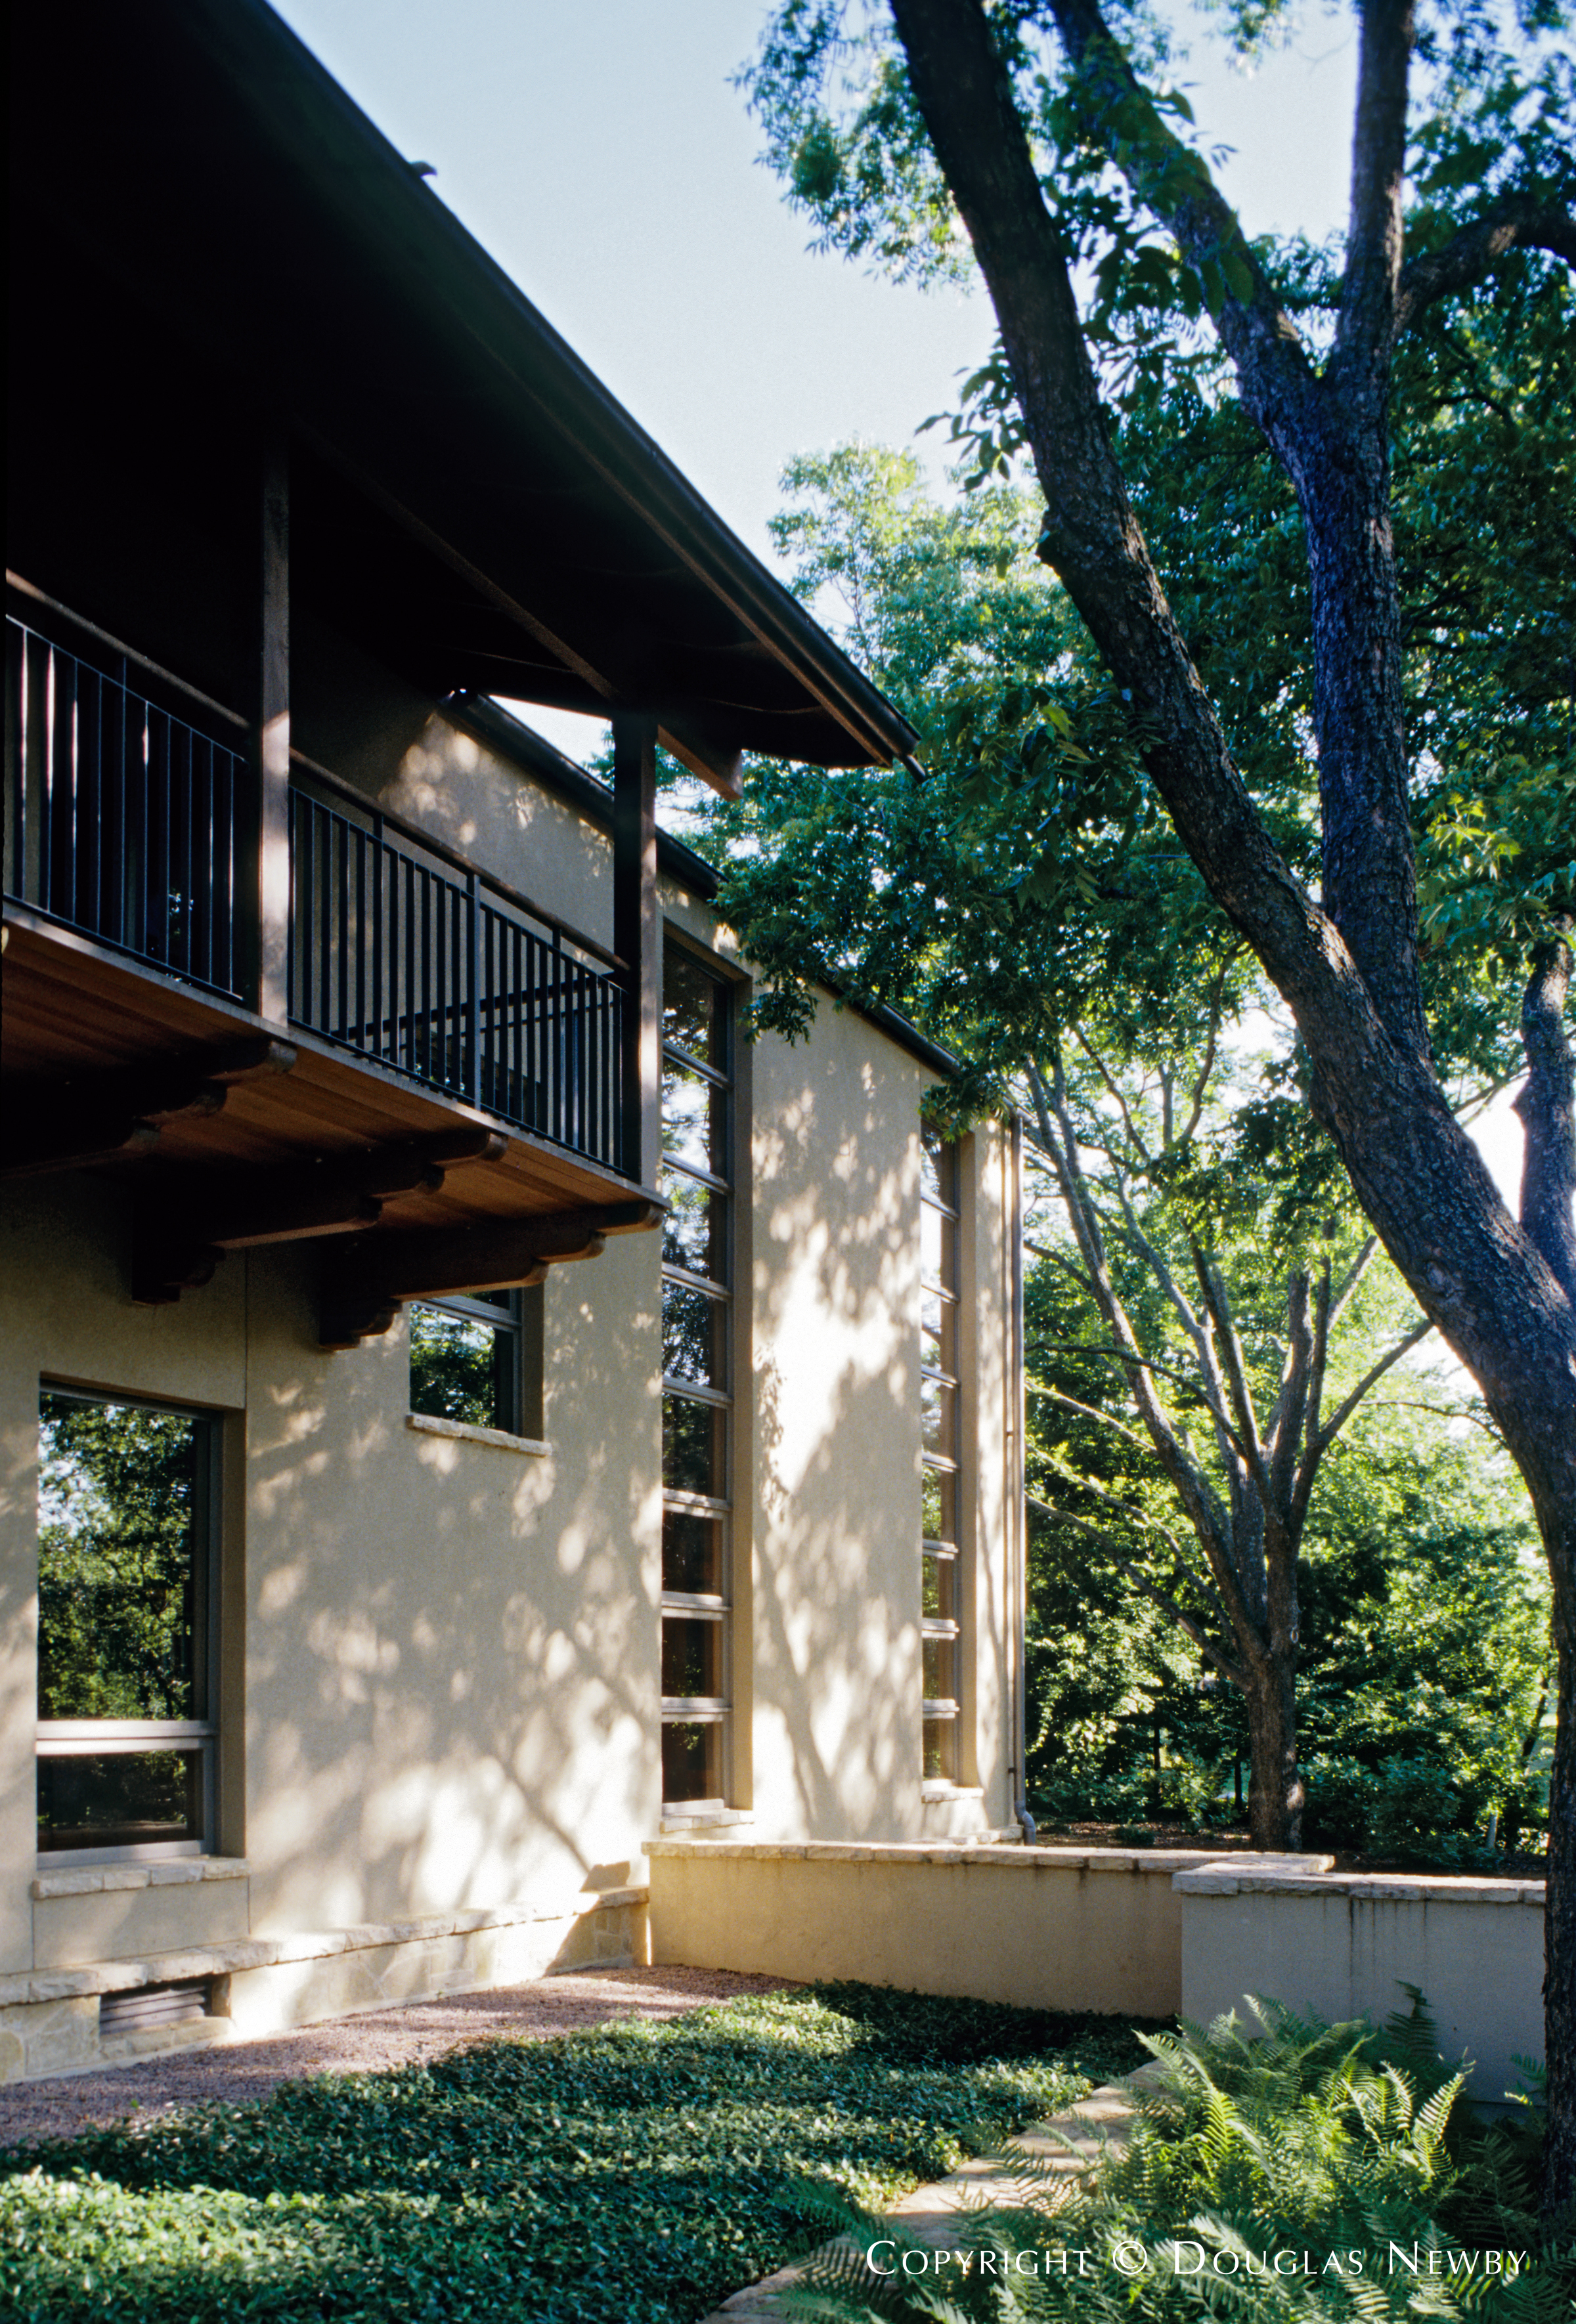 Frank Welch Texas Modern Designed Home in West Lawther Drive